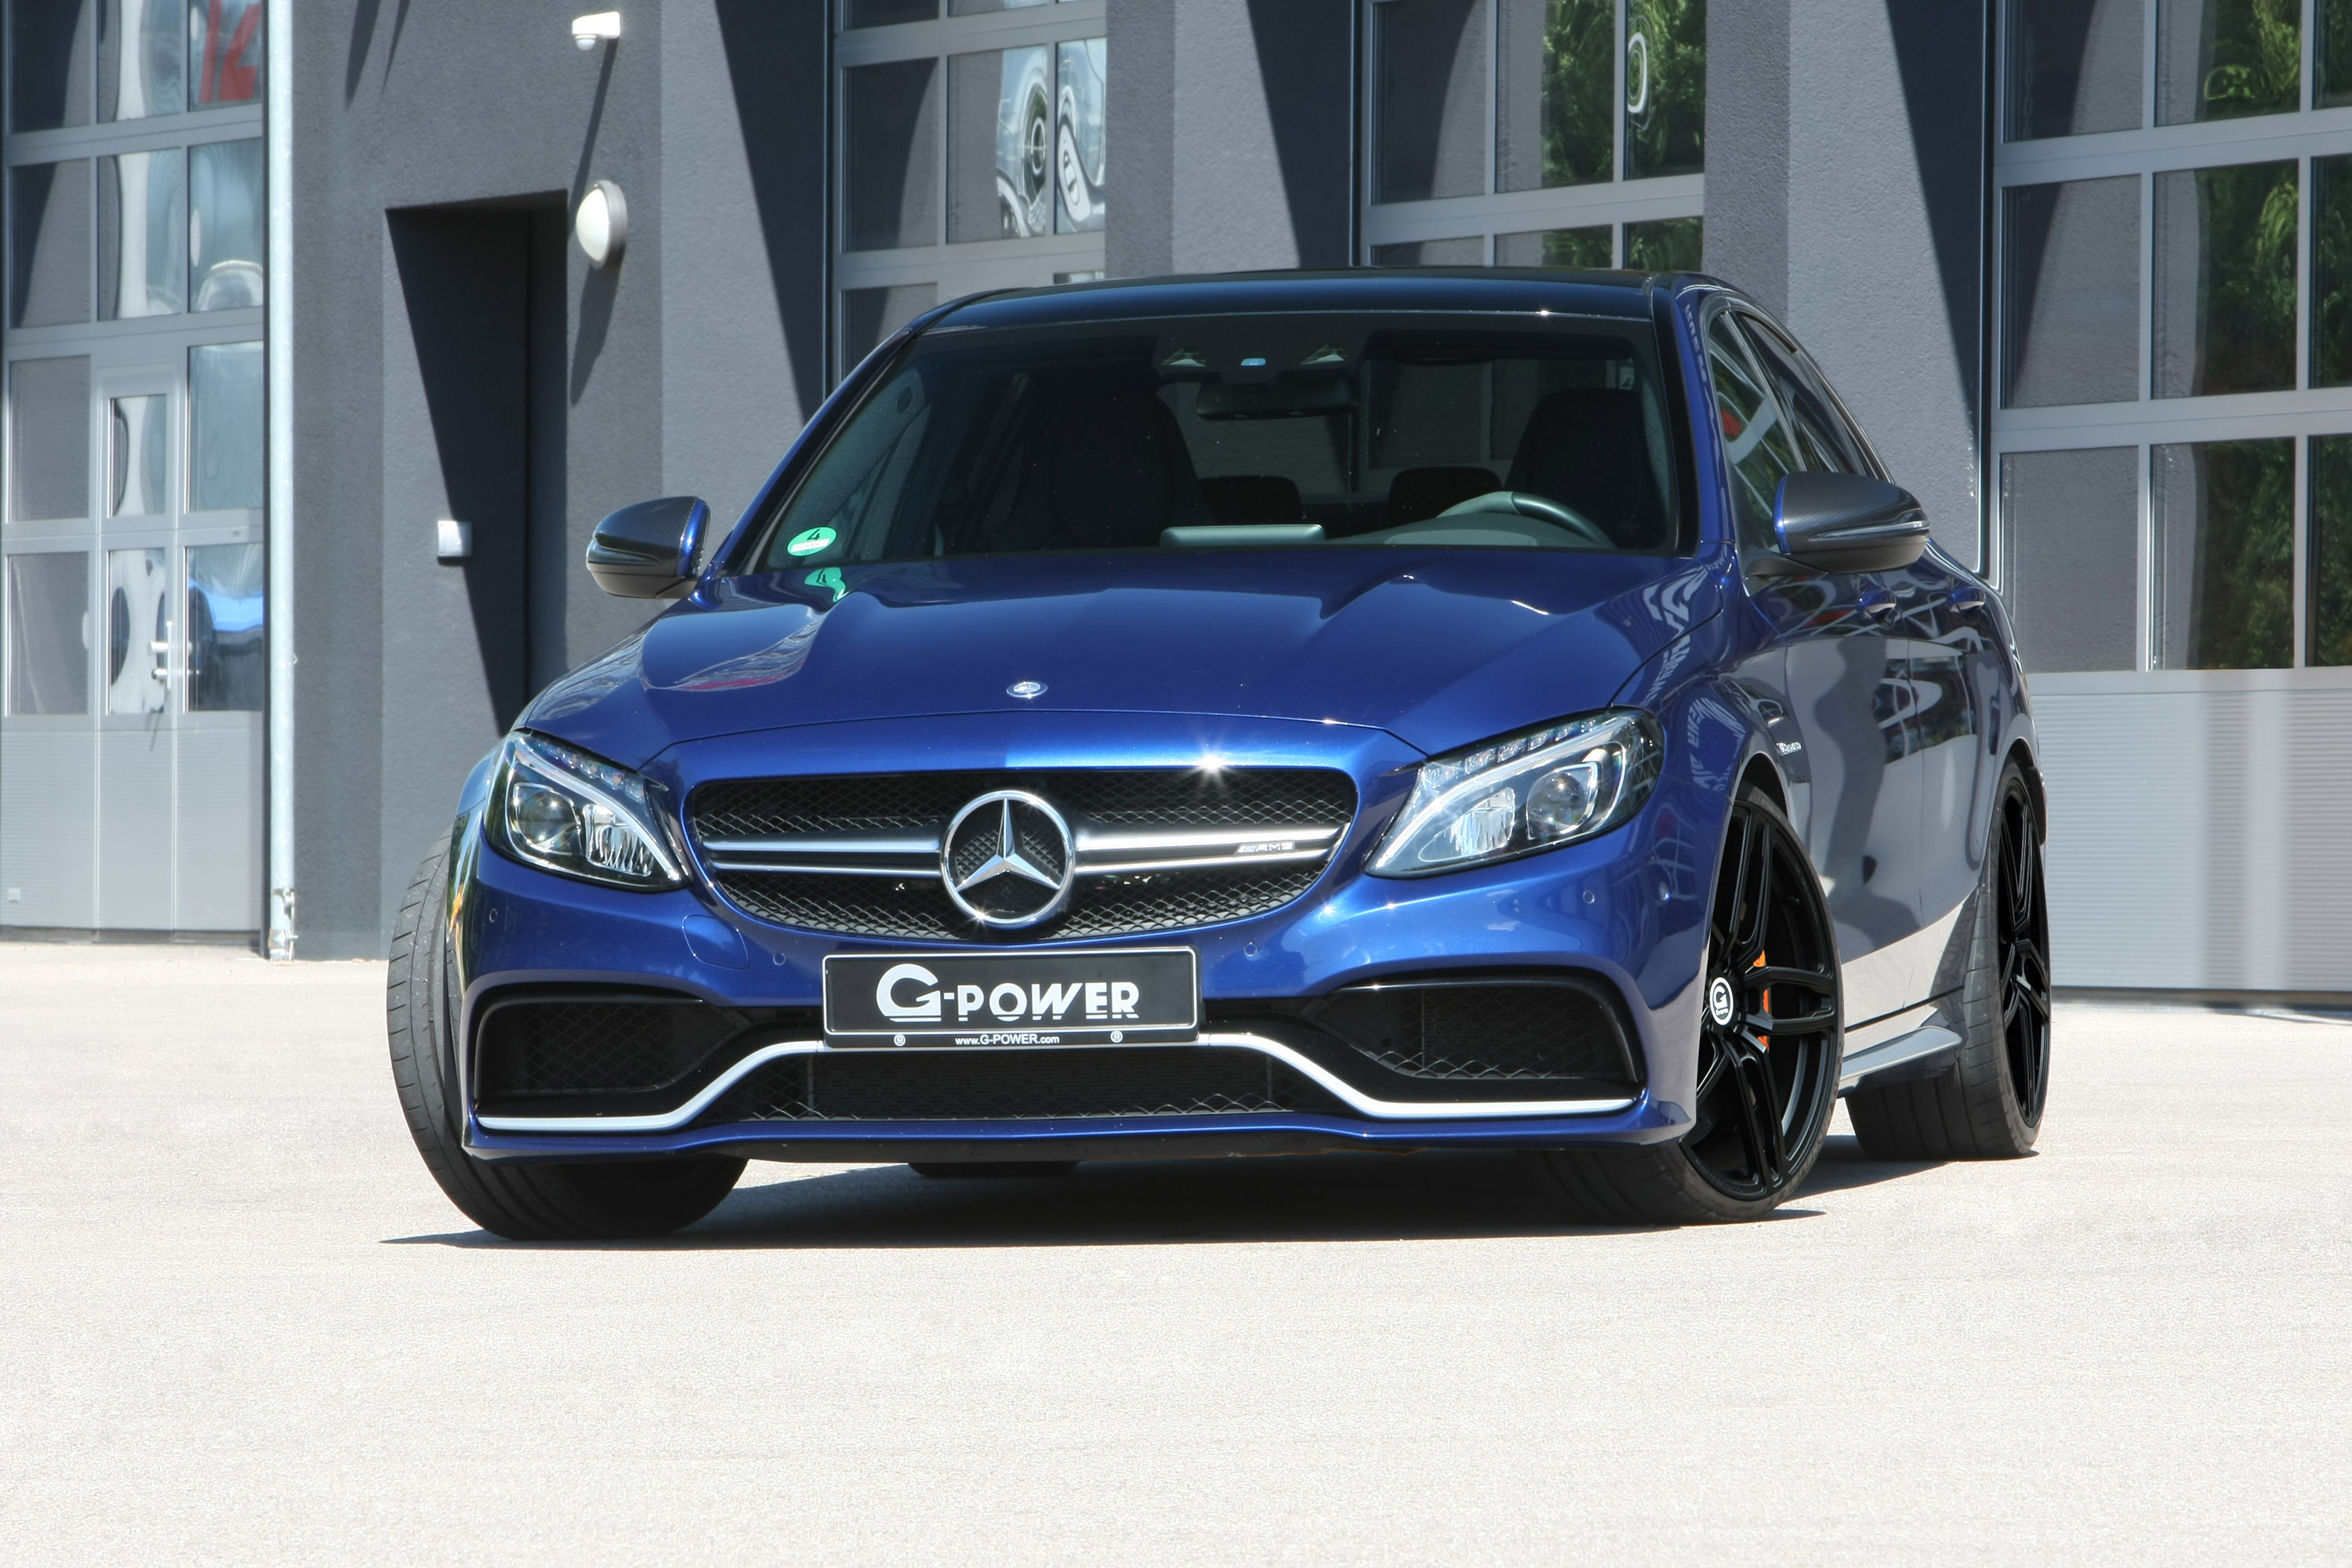 G-POWER reveals its latest chiptuning project